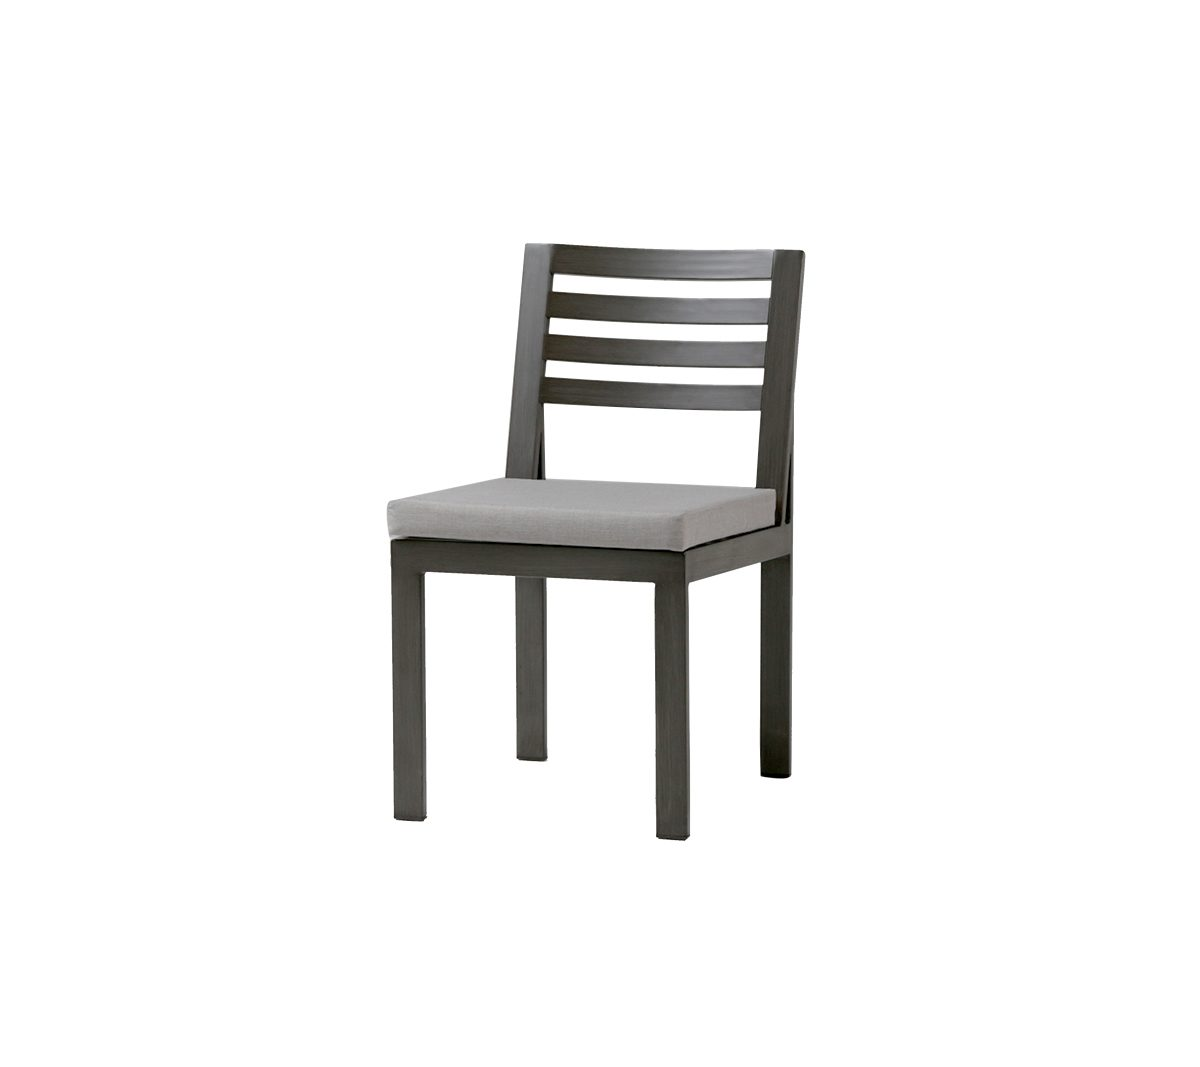 FN57011ASG_C Element 5.0 Dining Side Chair